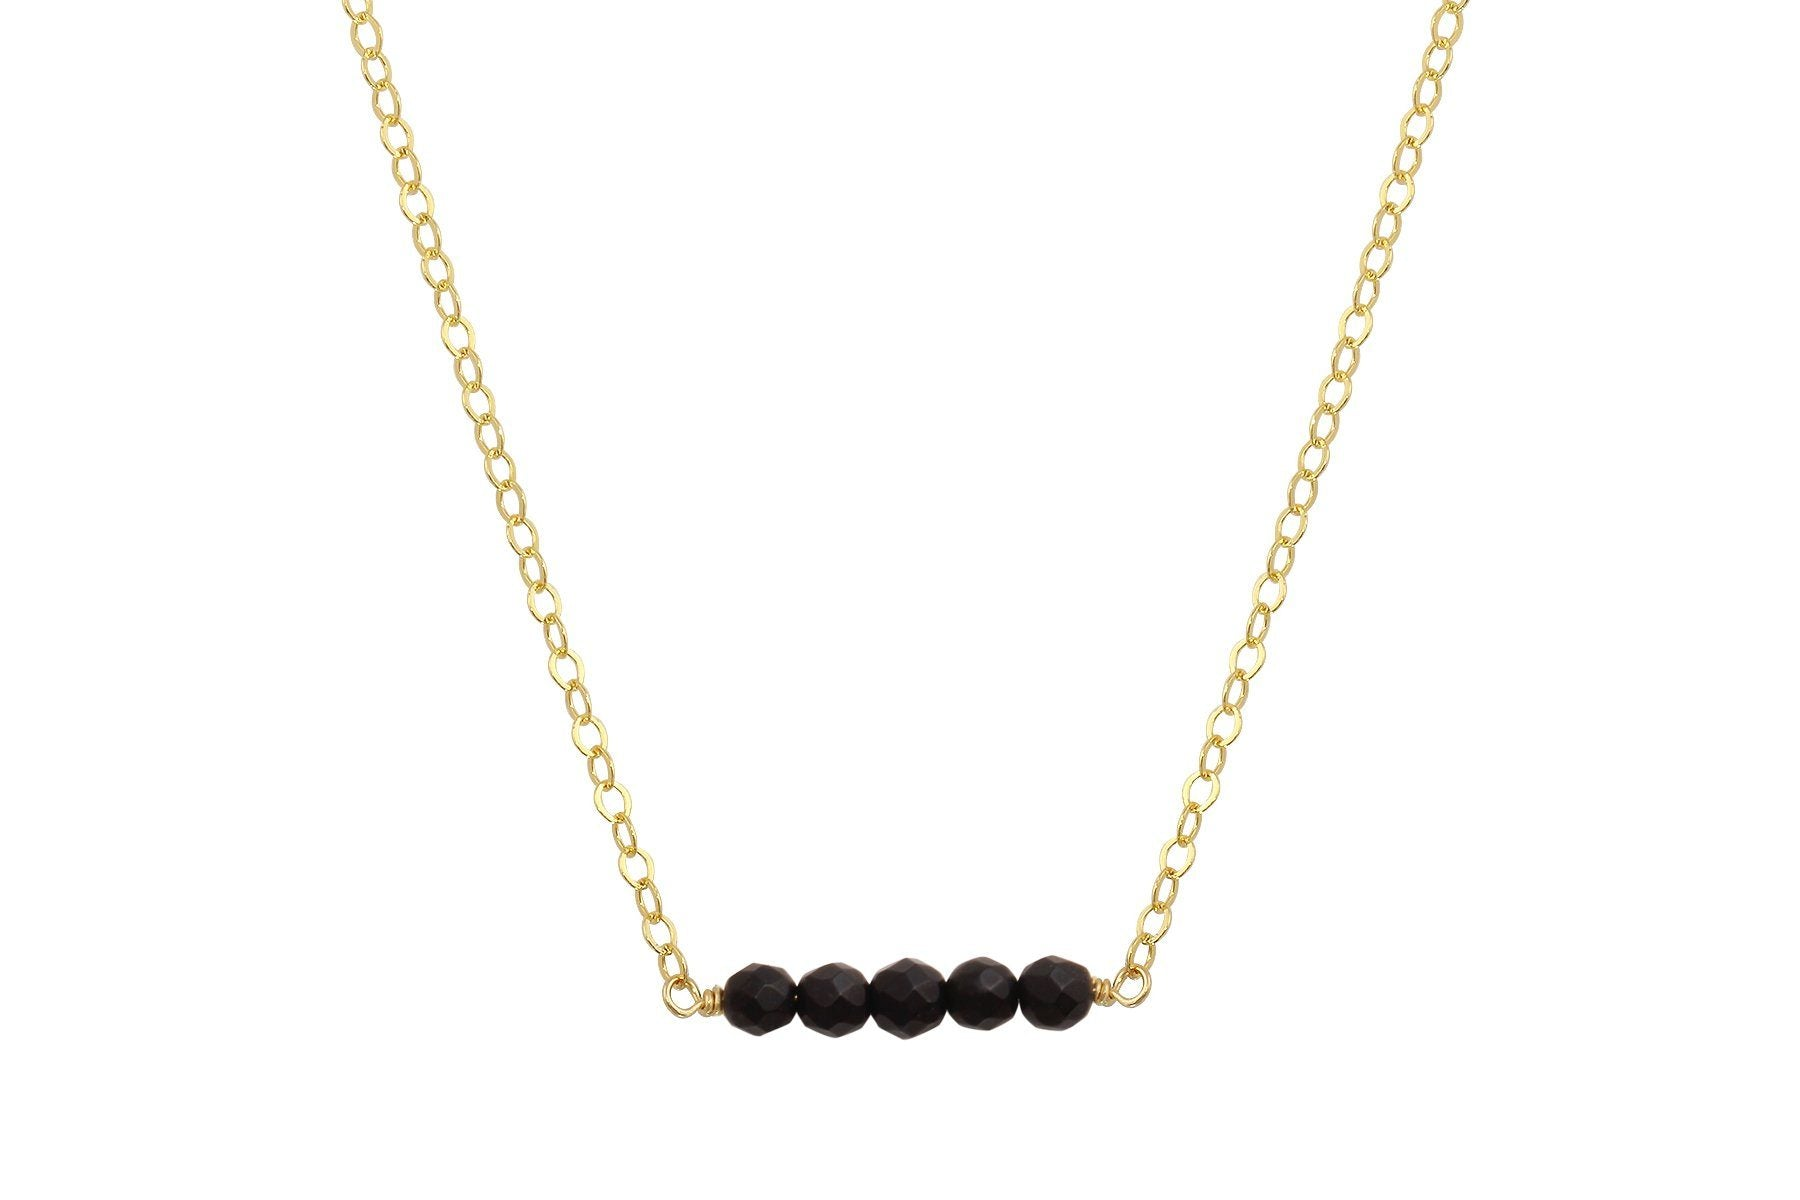 Elements matte Black Onyx yellow gold fiiled necklace - quick ship